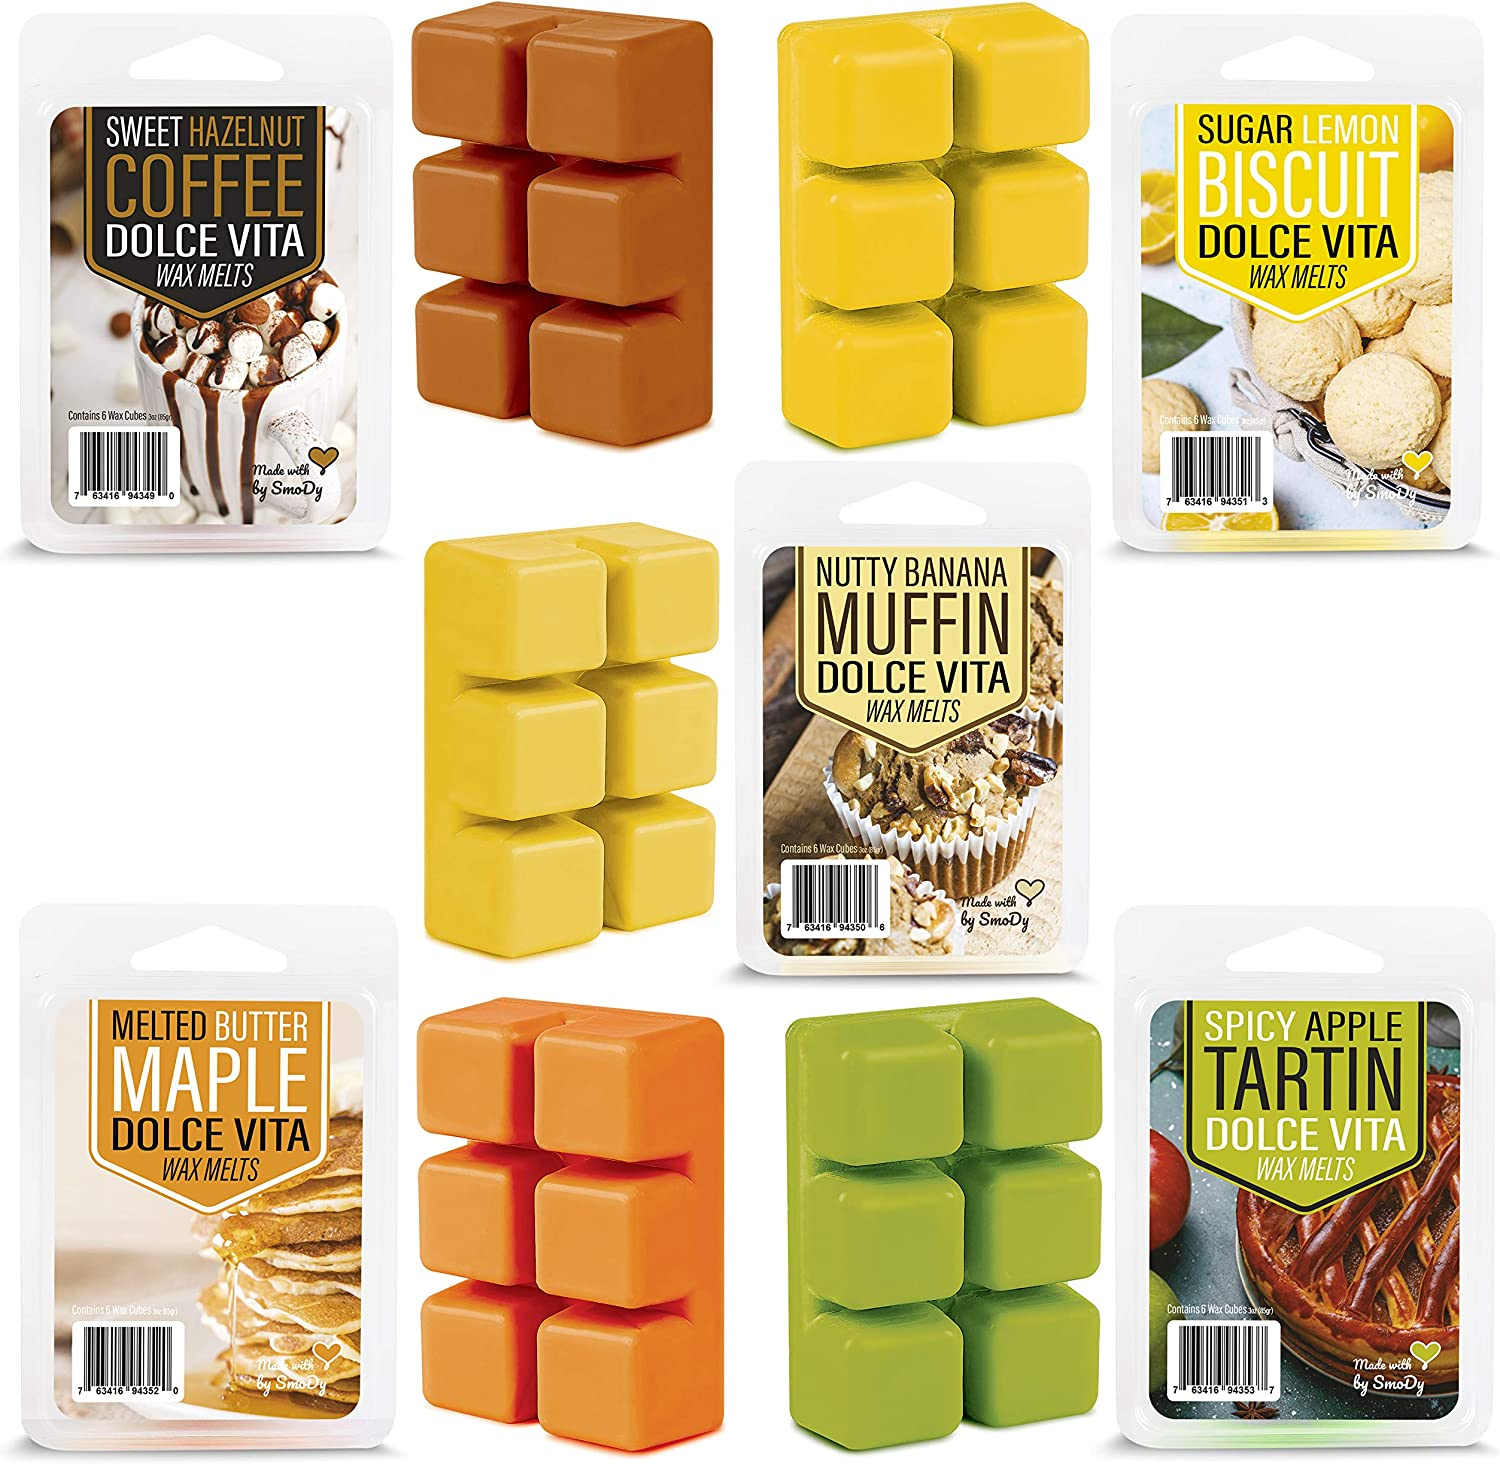 SmoDy Wax Melts Fall Scents (Sweet) 3 Ounces x 5 Highly Scented Soy Wax Cubes for Electric Warmer and Burner | Long Lasting Fragrances - Coffee, Biscuit, Banana Nut, Maple and Apple Spice | Great Gift